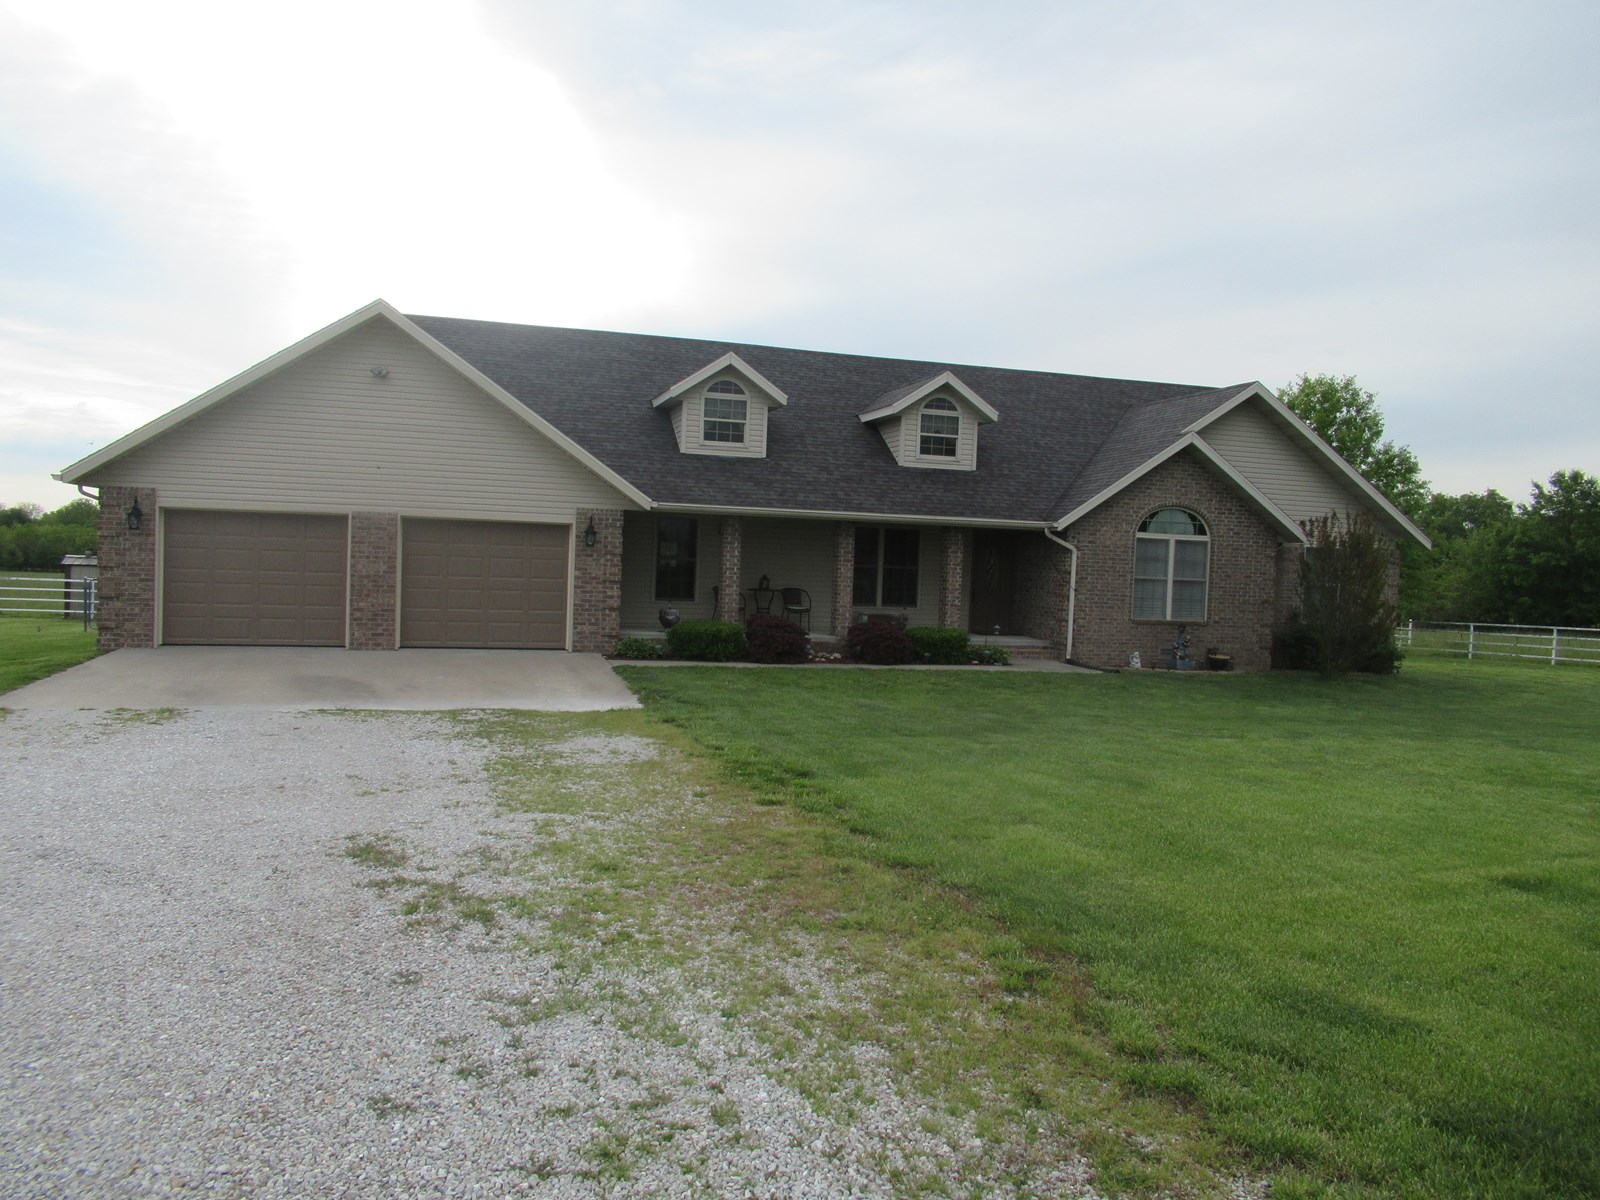 Country Home in Everton, Missouri For Sale